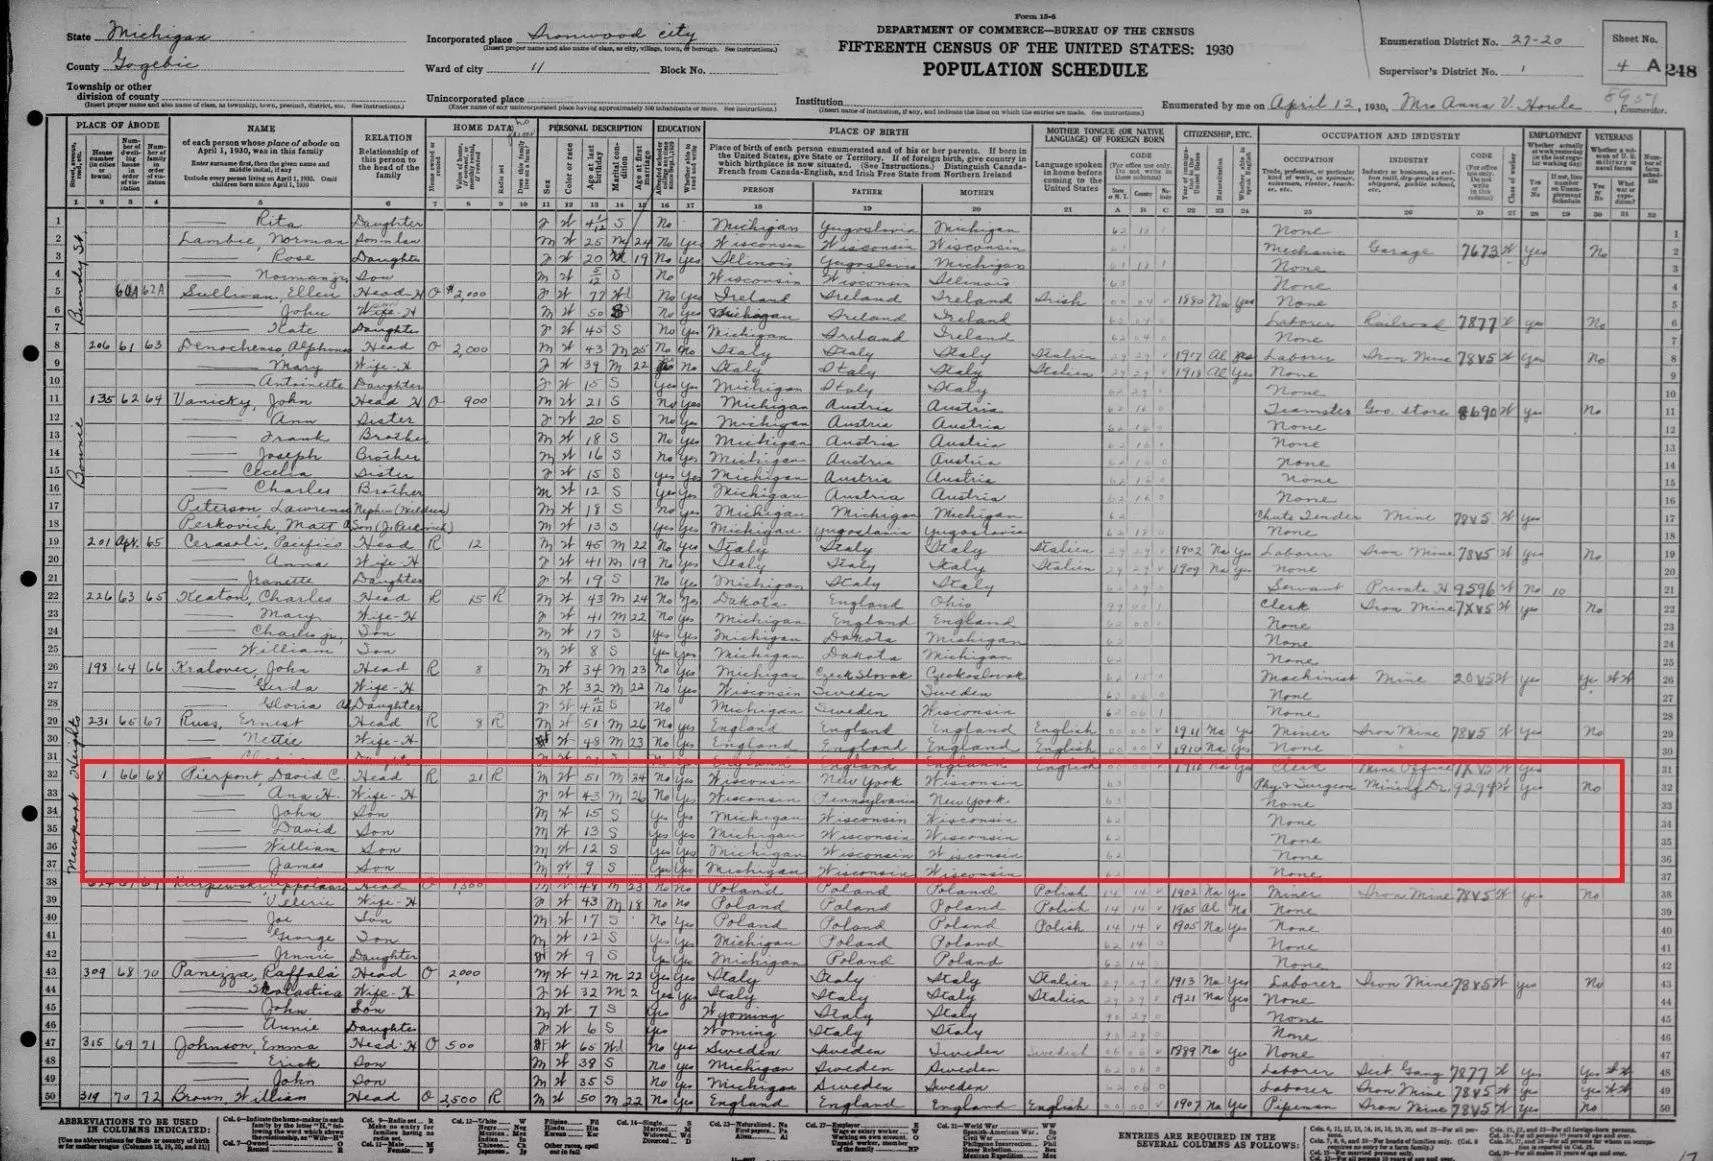 1930 Census Record of Dr. David Cowee Pierpont [Credit: MyHeritage]